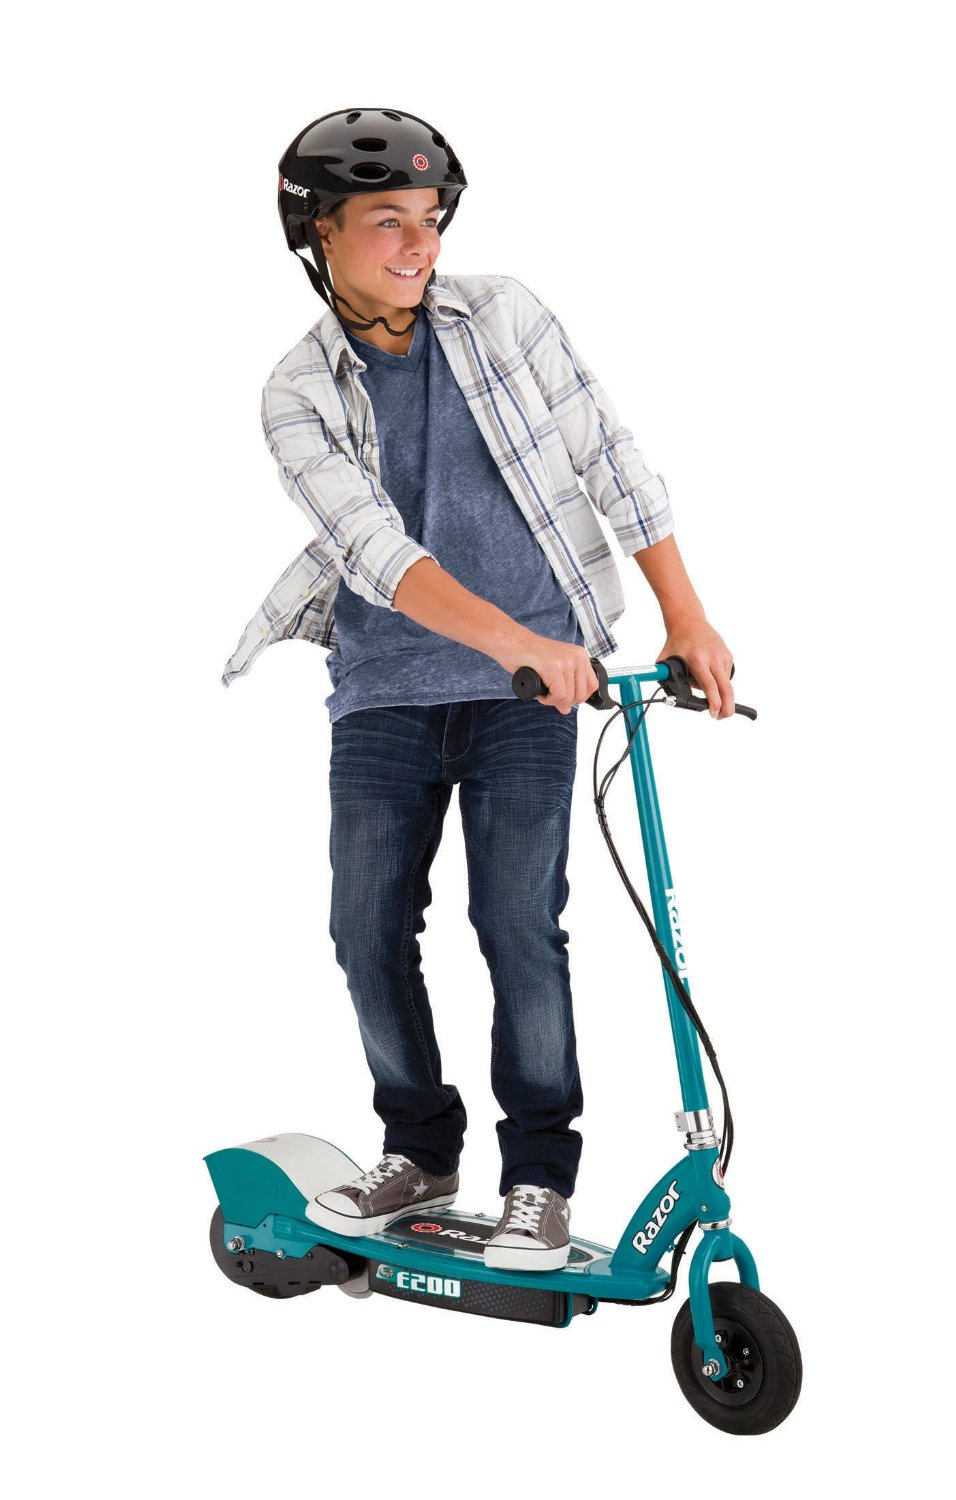 loved the idea of the electric scooter so much I had to upgrade. Before I had the E100 which was a very nice scooter, but when I heard there was a faster option I knew I had to go for it. The E100 has a top speed of 10 miles per hour but the E200 boasts a top speed of 12 miles per hour. This is a pretty significant increase in speed, going from a jogging pace to a full on sprint with just the turn of your wrist.The scooter attains this speed with the help of its high torque, chain driven moto